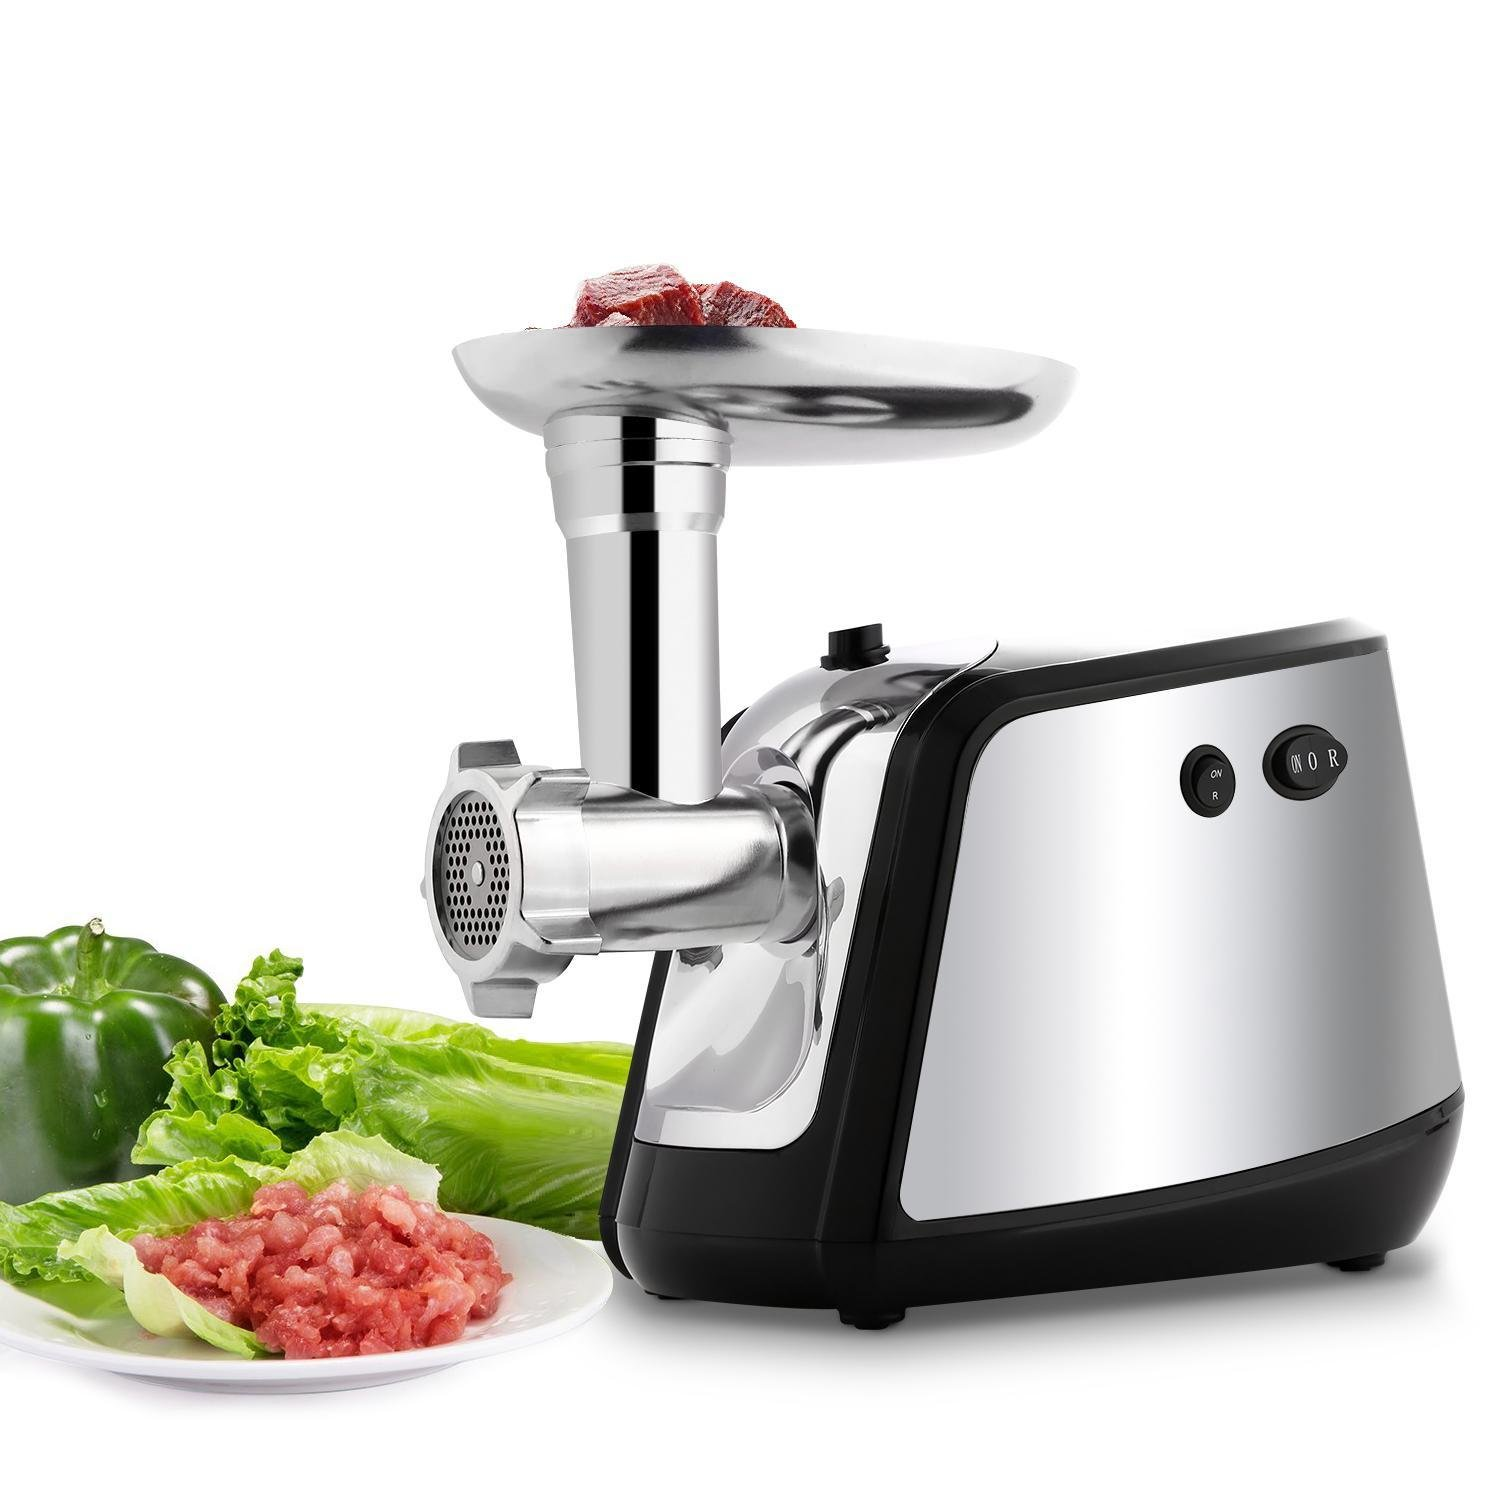 Benlet Max 1000W Home Electric Meat Grinder Heavy Duty Sausage Stuffer Stainless Steel Mincing Machine with 3 Grinding Plate